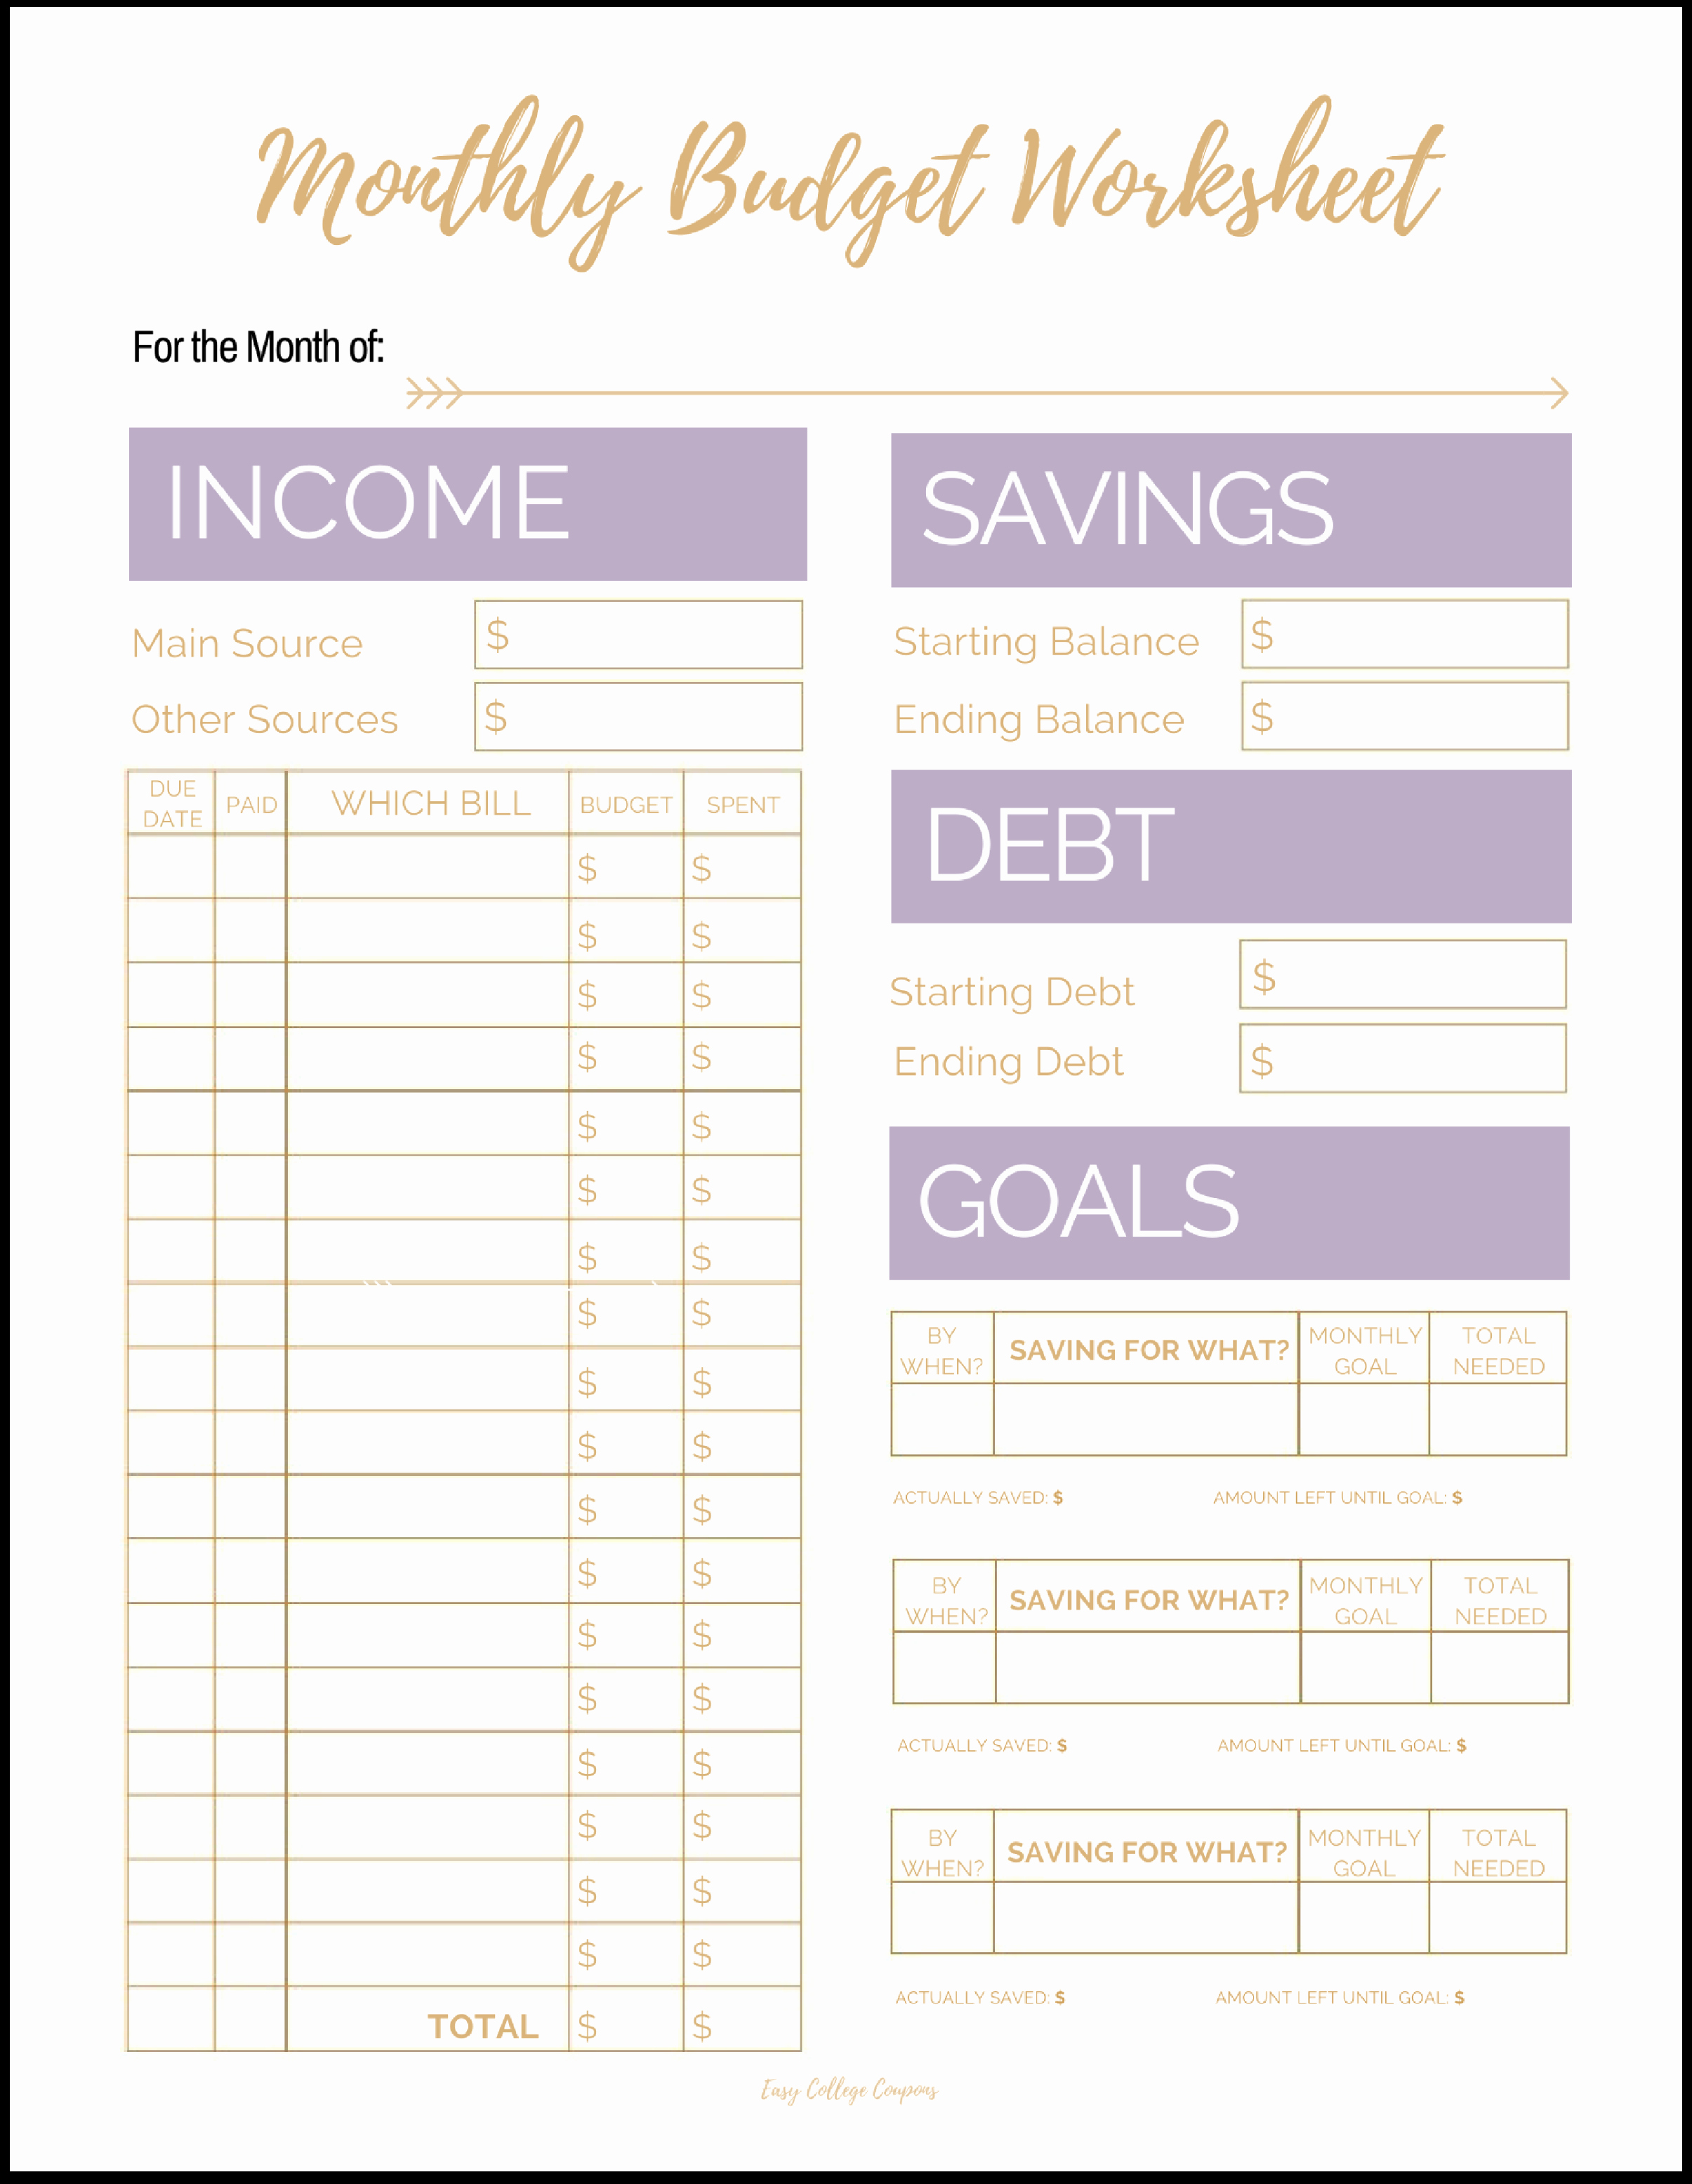 Basic Budget Worksheet College Student New Free Printable Monthly Bud Template